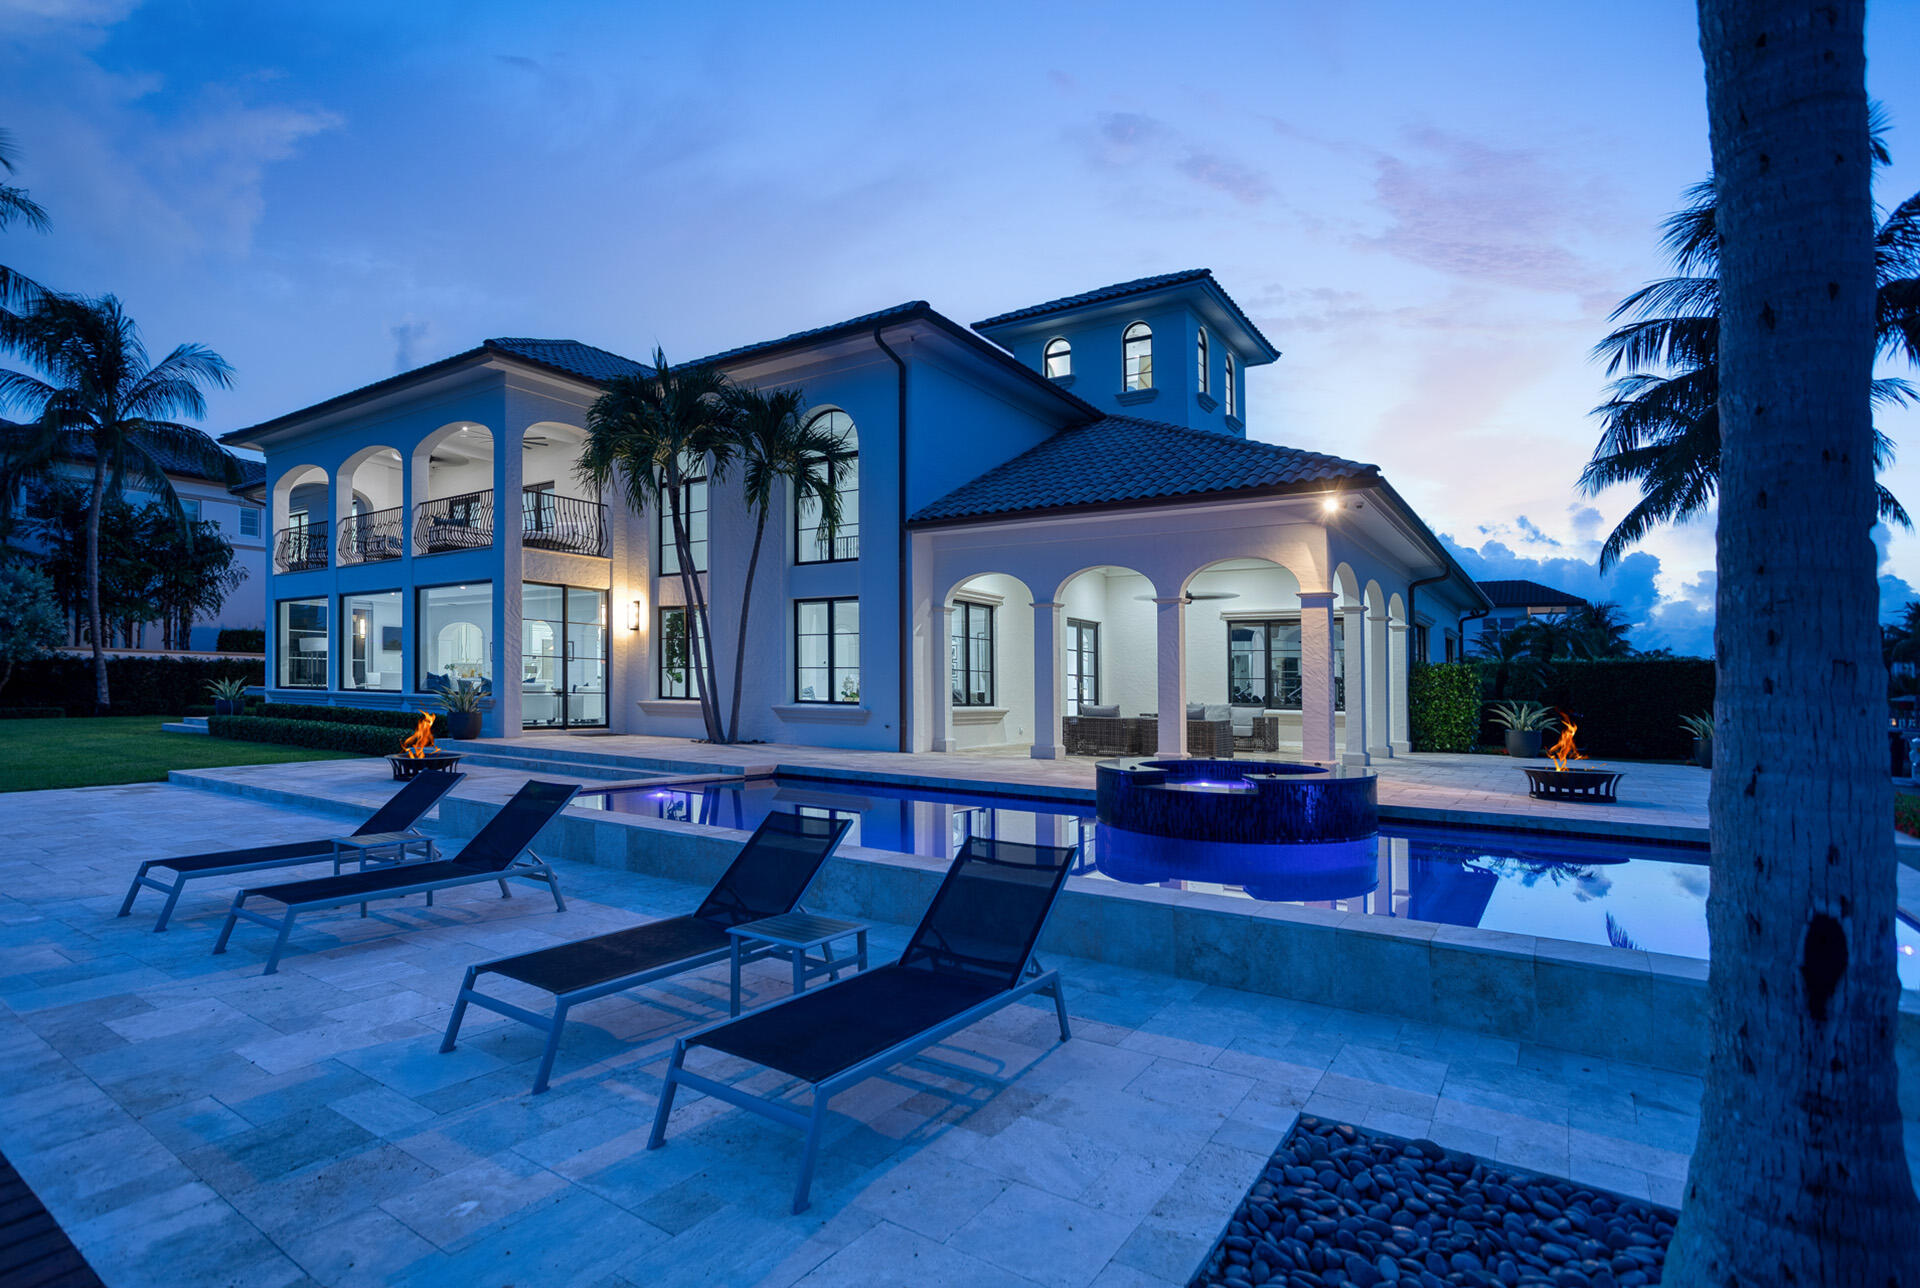 1002 Lewis Cove Road, Delray Beach, Florida 33483, 5 Bedrooms Bedrooms, ,5.2 BathroomsBathrooms,Single Family Detached,For Sale,Lewis Cove,RX-10742246